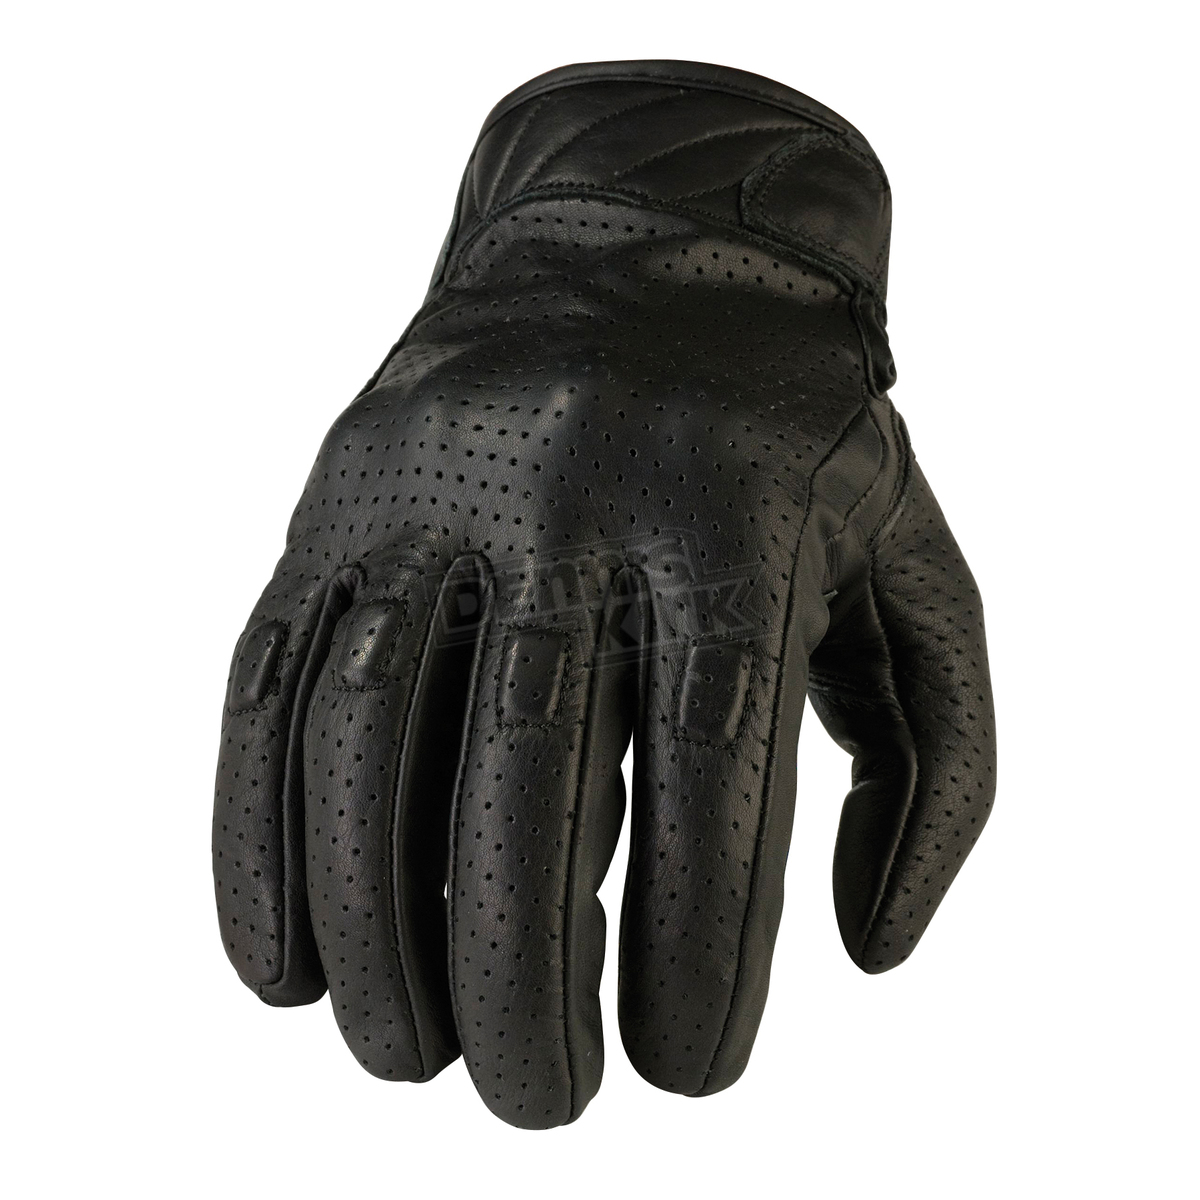 Mens black leather gloves xl - Loading Zoom